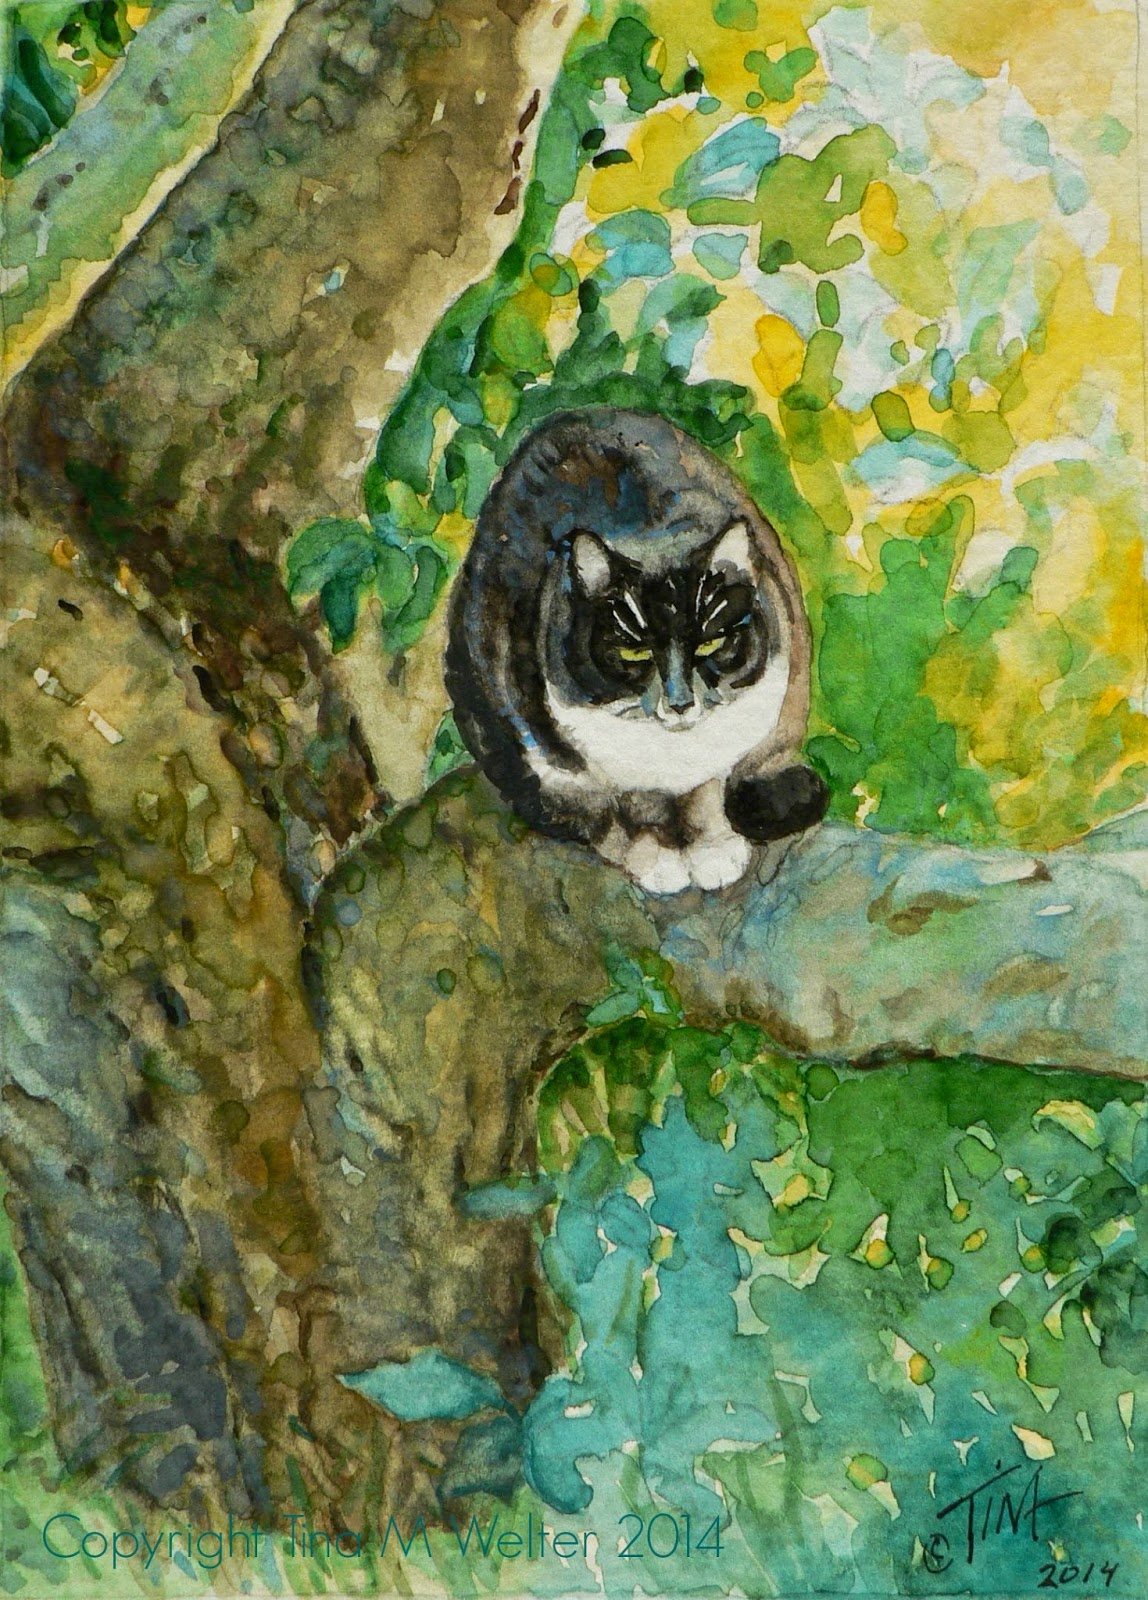 Original watercolor painting by Tina M Welter of a black and white cat sitting in an apple tree in Dresden, Germany.